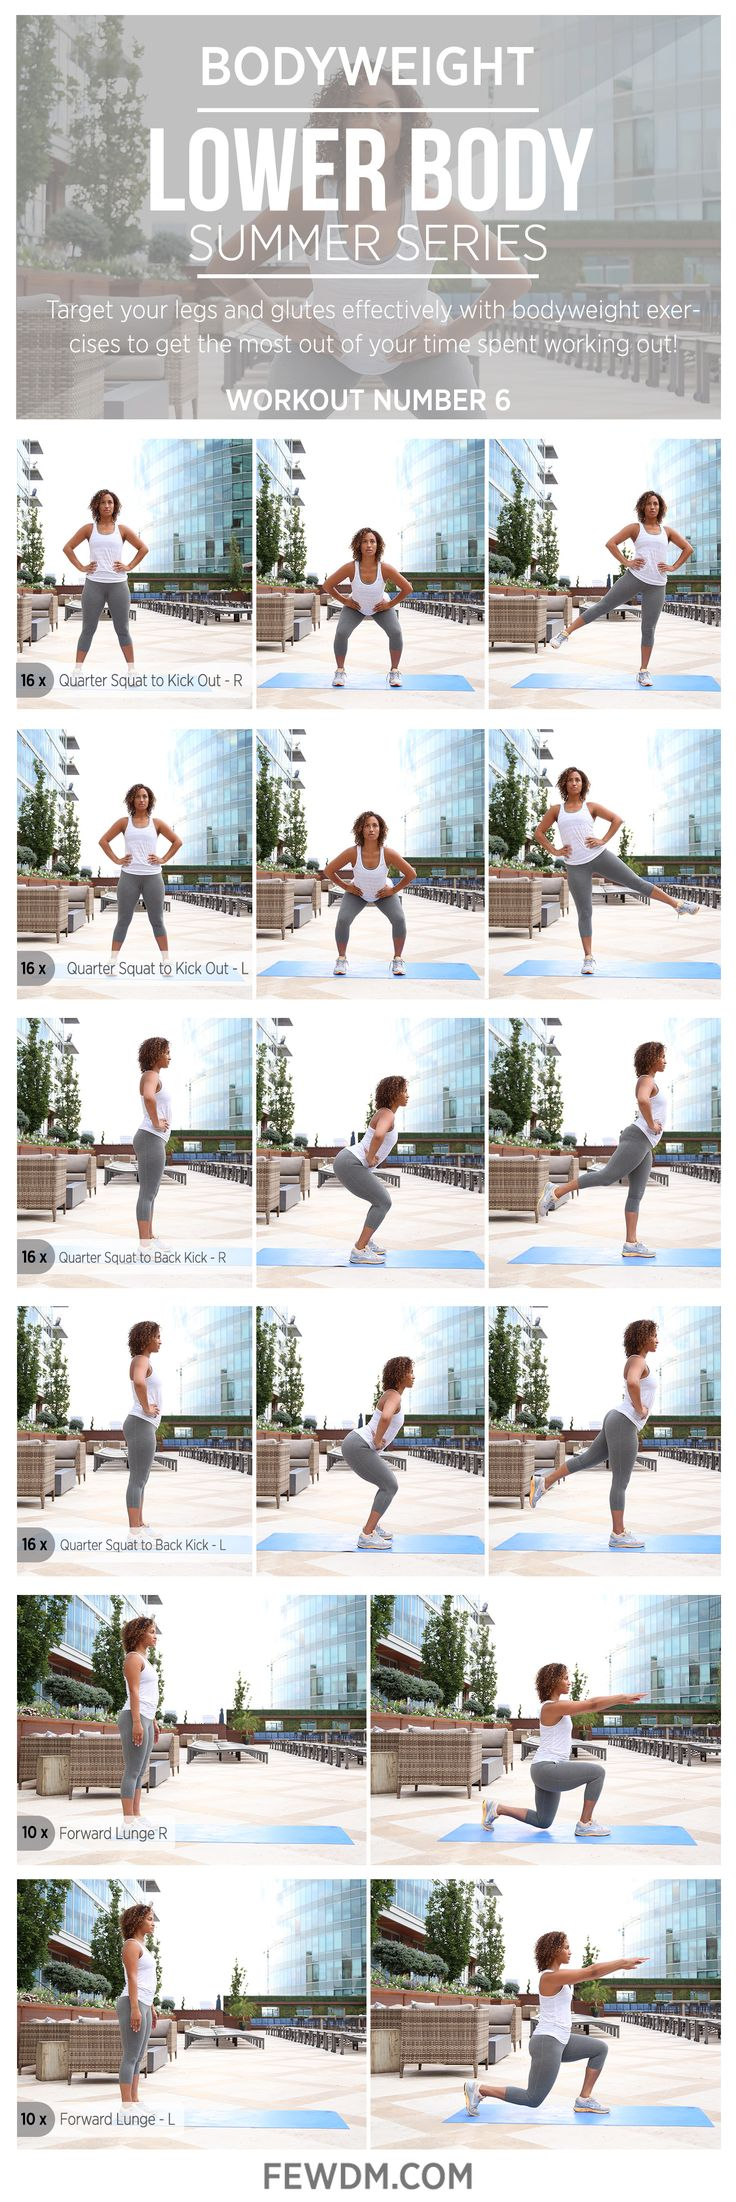 Whip your lower body into shape with these bodyweight exercises.You can do them anywhere at any time!  Workout 6 in the Summer Series, Lower Body.